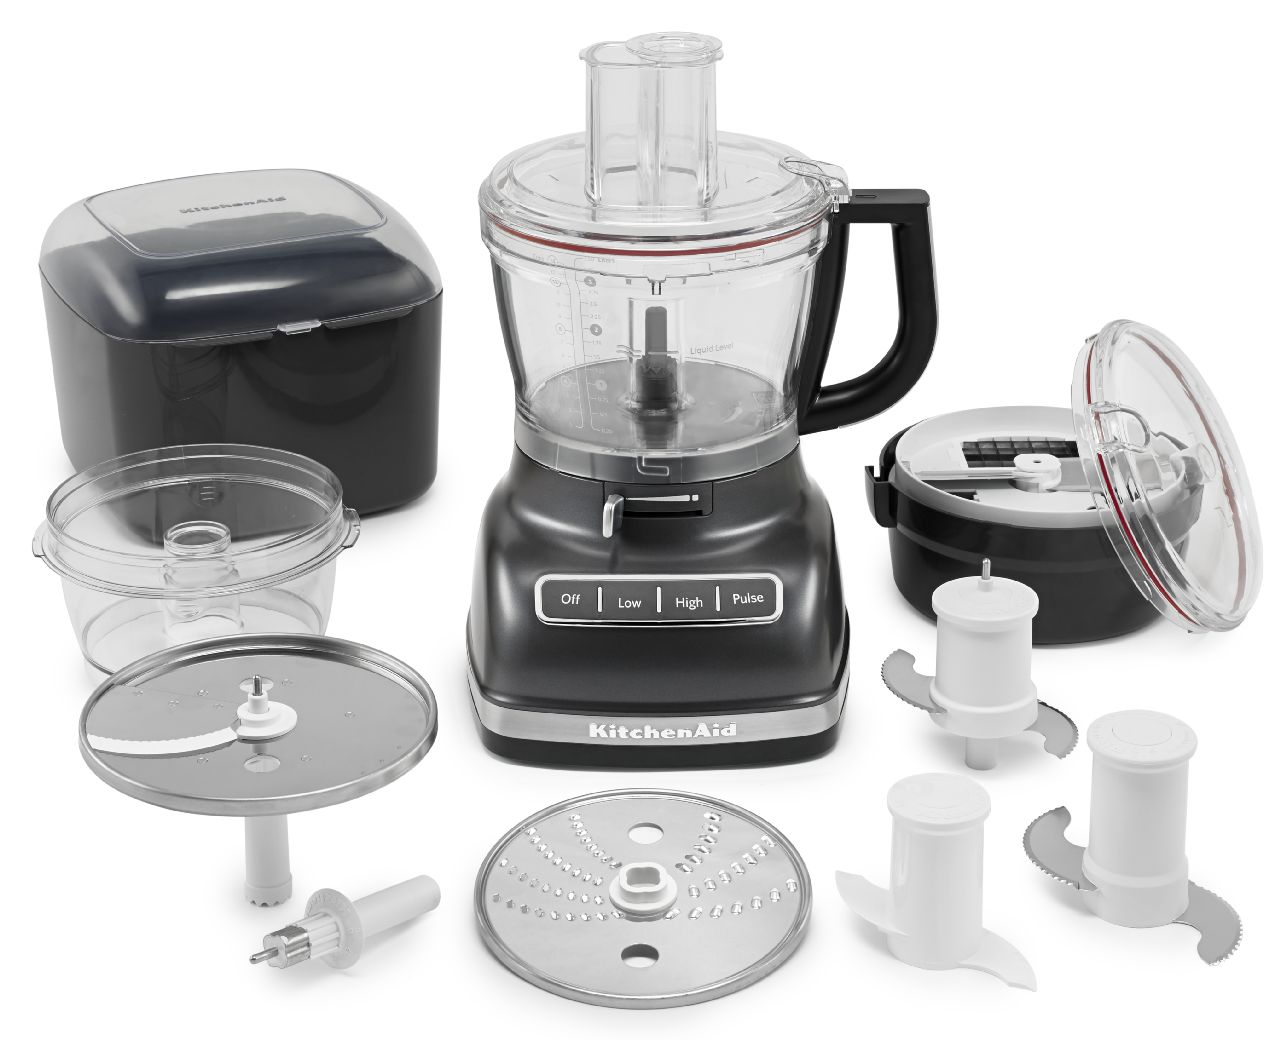 KitchenAid-14-Cup-Food-Processor-with-Commercial-Style-Dicing-Kit-KFP1466 thumbnail 8